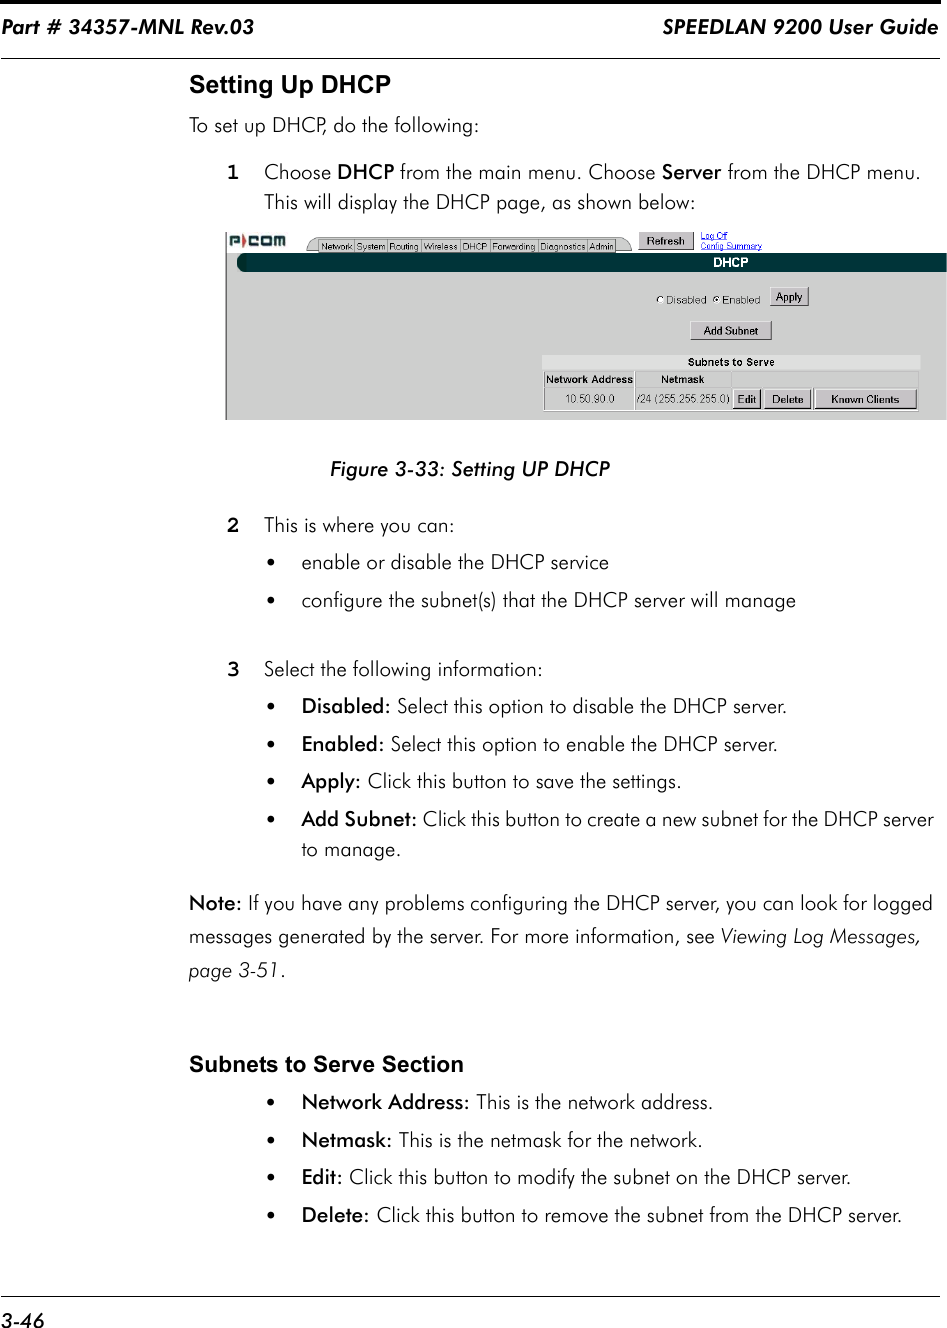 Part # 34357-MNL Rev.03                                                                   SPEEDLAN 9200 User Guide 3-46Setting Up DHCP To set up DHCP, do the following:1Choose DHCP from the main menu. Choose Server from the DHCP menu. This will display the DHCP page, as shown below:Figure 3-33: Setting UP DHCP2This is where you can: •enable or disable the DHCP service•configure the subnet(s) that the DHCP server will manage3Select the following information: •Disabled: Select this option to disable the DHCP server.•Enabled: Select this option to enable the DHCP server.•Apply: Click this button to save the settings. •Add Subnet: Click this button to create a new subnet for the DHCP server to manage. Note: If you have any problems configuring the DHCP server, you can look for logged messages generated by the server. For more information, see Viewing Log Messages, page 3-51.Subnets to Serve Section•Network Address: This is the network address.•Netmask: This is the netmask for the network.•Edit: Click this button to modify the subnet on the DHCP server.•Delete: Click this button to remove the subnet from the DHCP server.